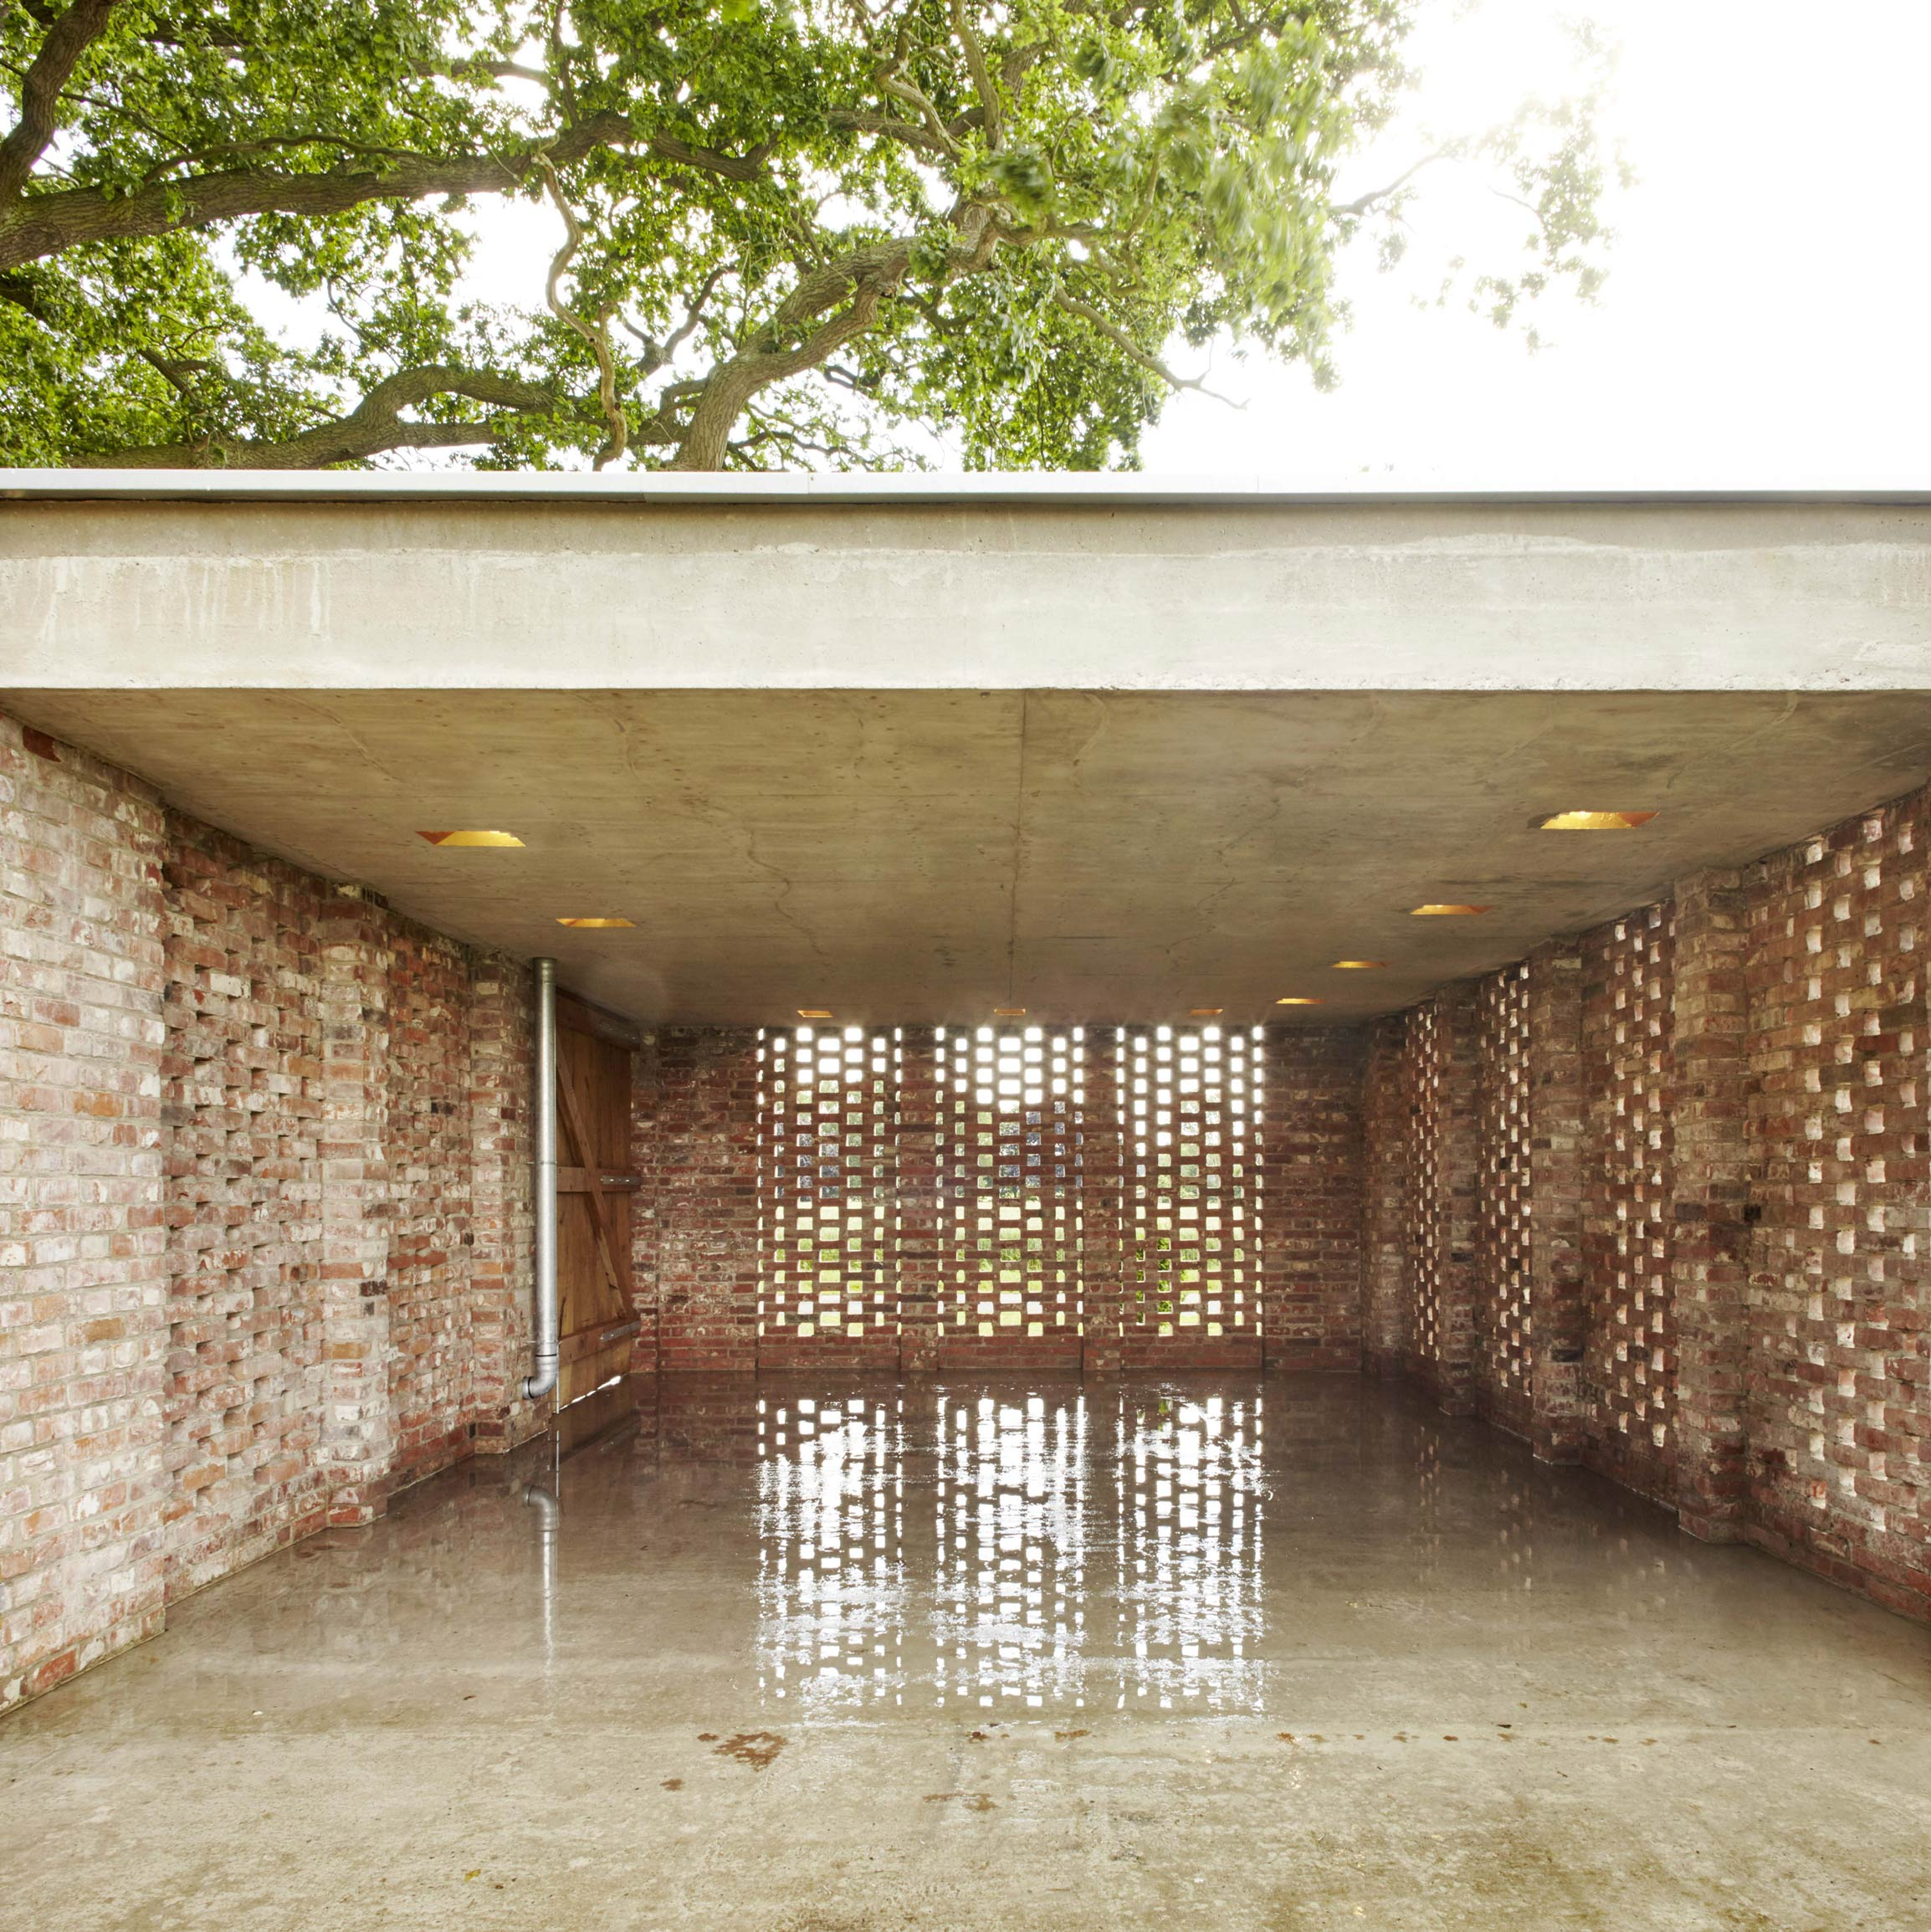 christian_burmester_architecture_wirth_remisenpavillon_06